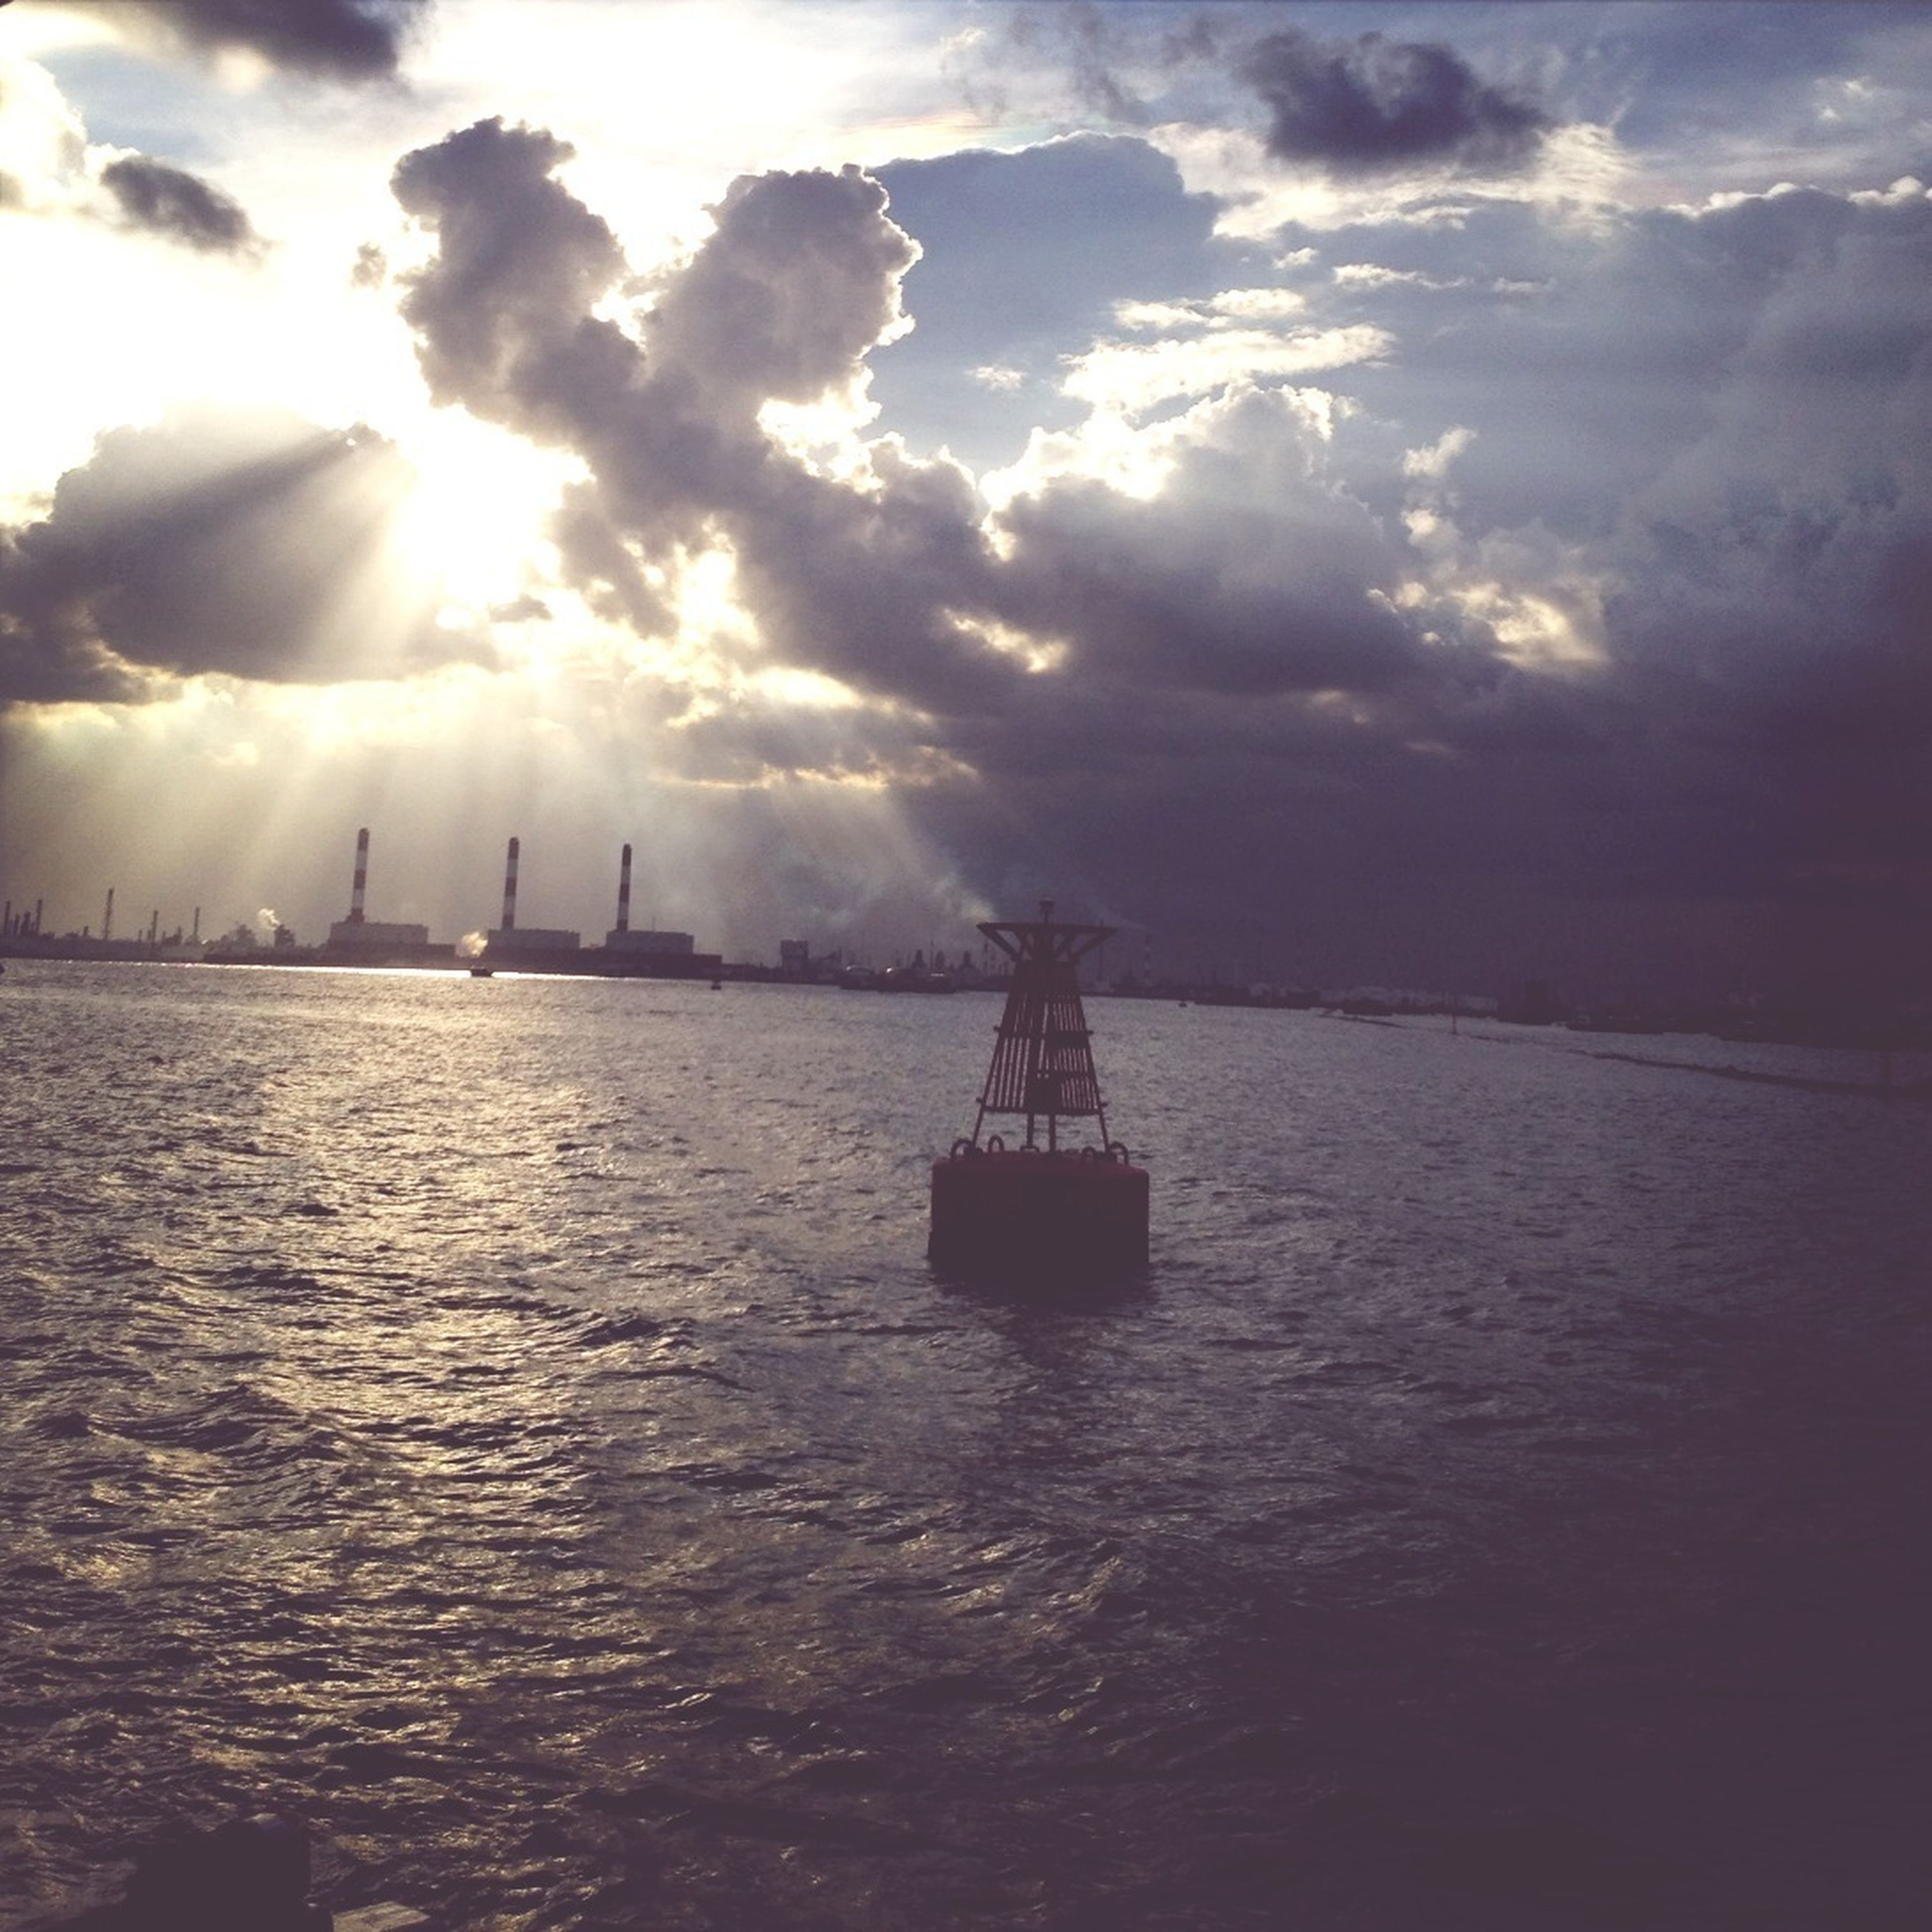 water, sky, sea, nautical vessel, waterfront, cloud - sky, transportation, mode of transport, boat, scenics, cloudy, tranquility, tranquil scene, sunbeam, beauty in nature, sun, nature, cloud, sunset, sailing